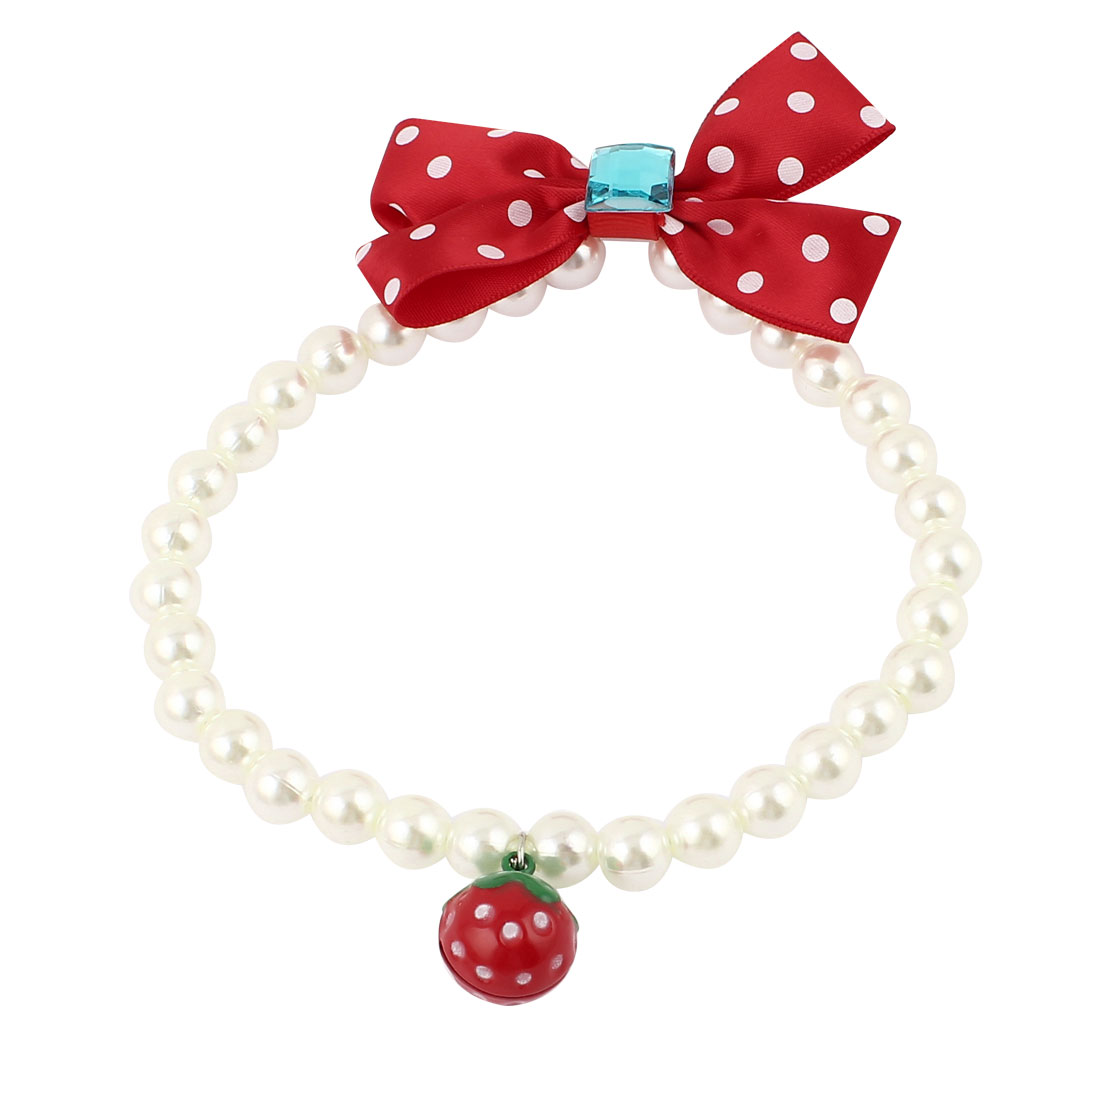 Metal Bell Pendant Bowknot Accent Pet Dog Plastic Beads Imitation Pearls Collar Necklace White Red M